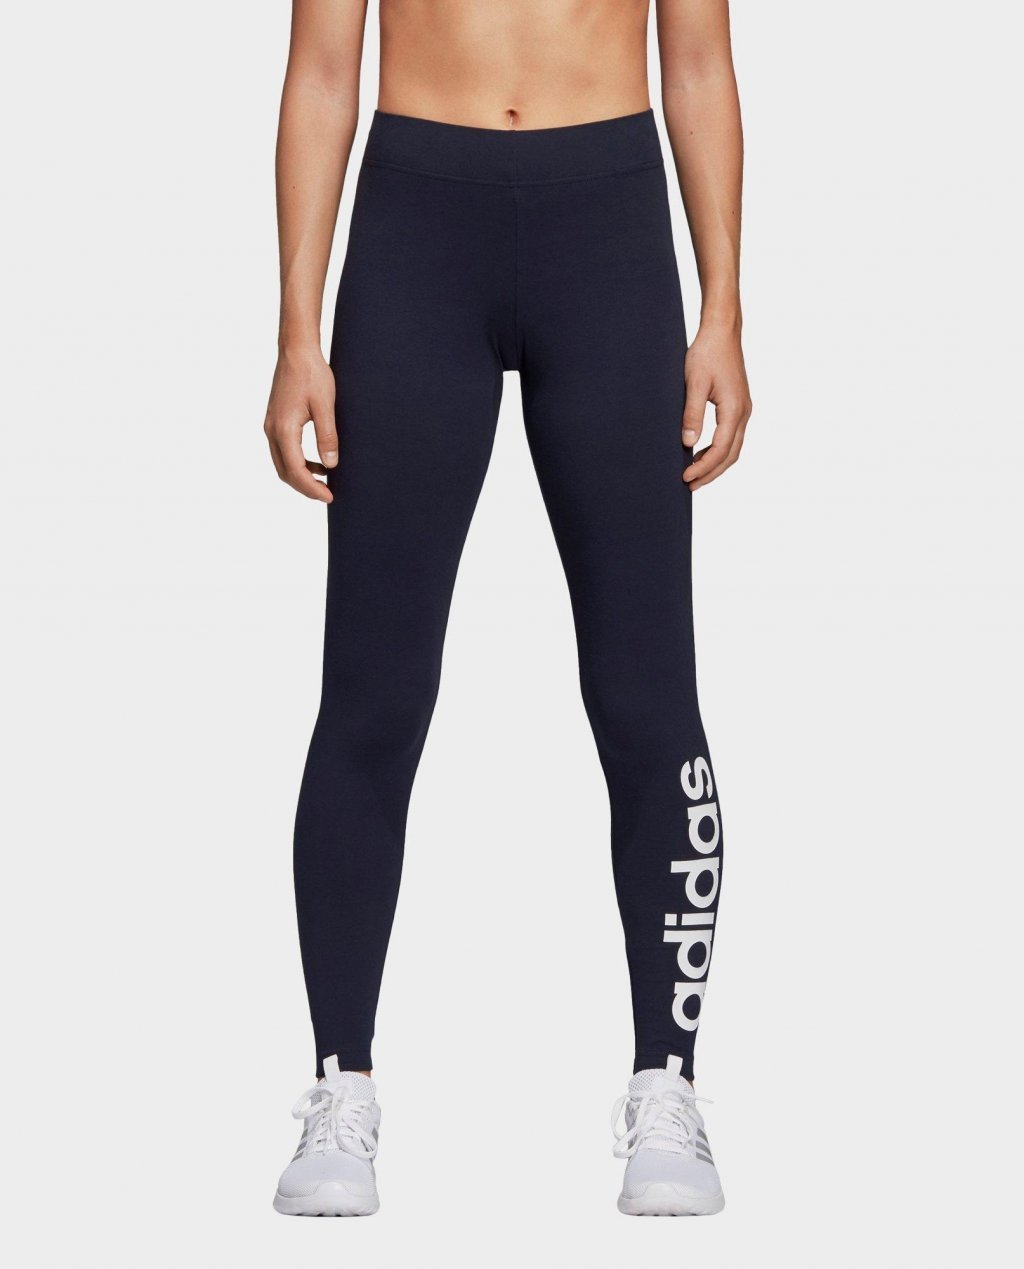 Women's ADIDAS Essentials Linear Leggings